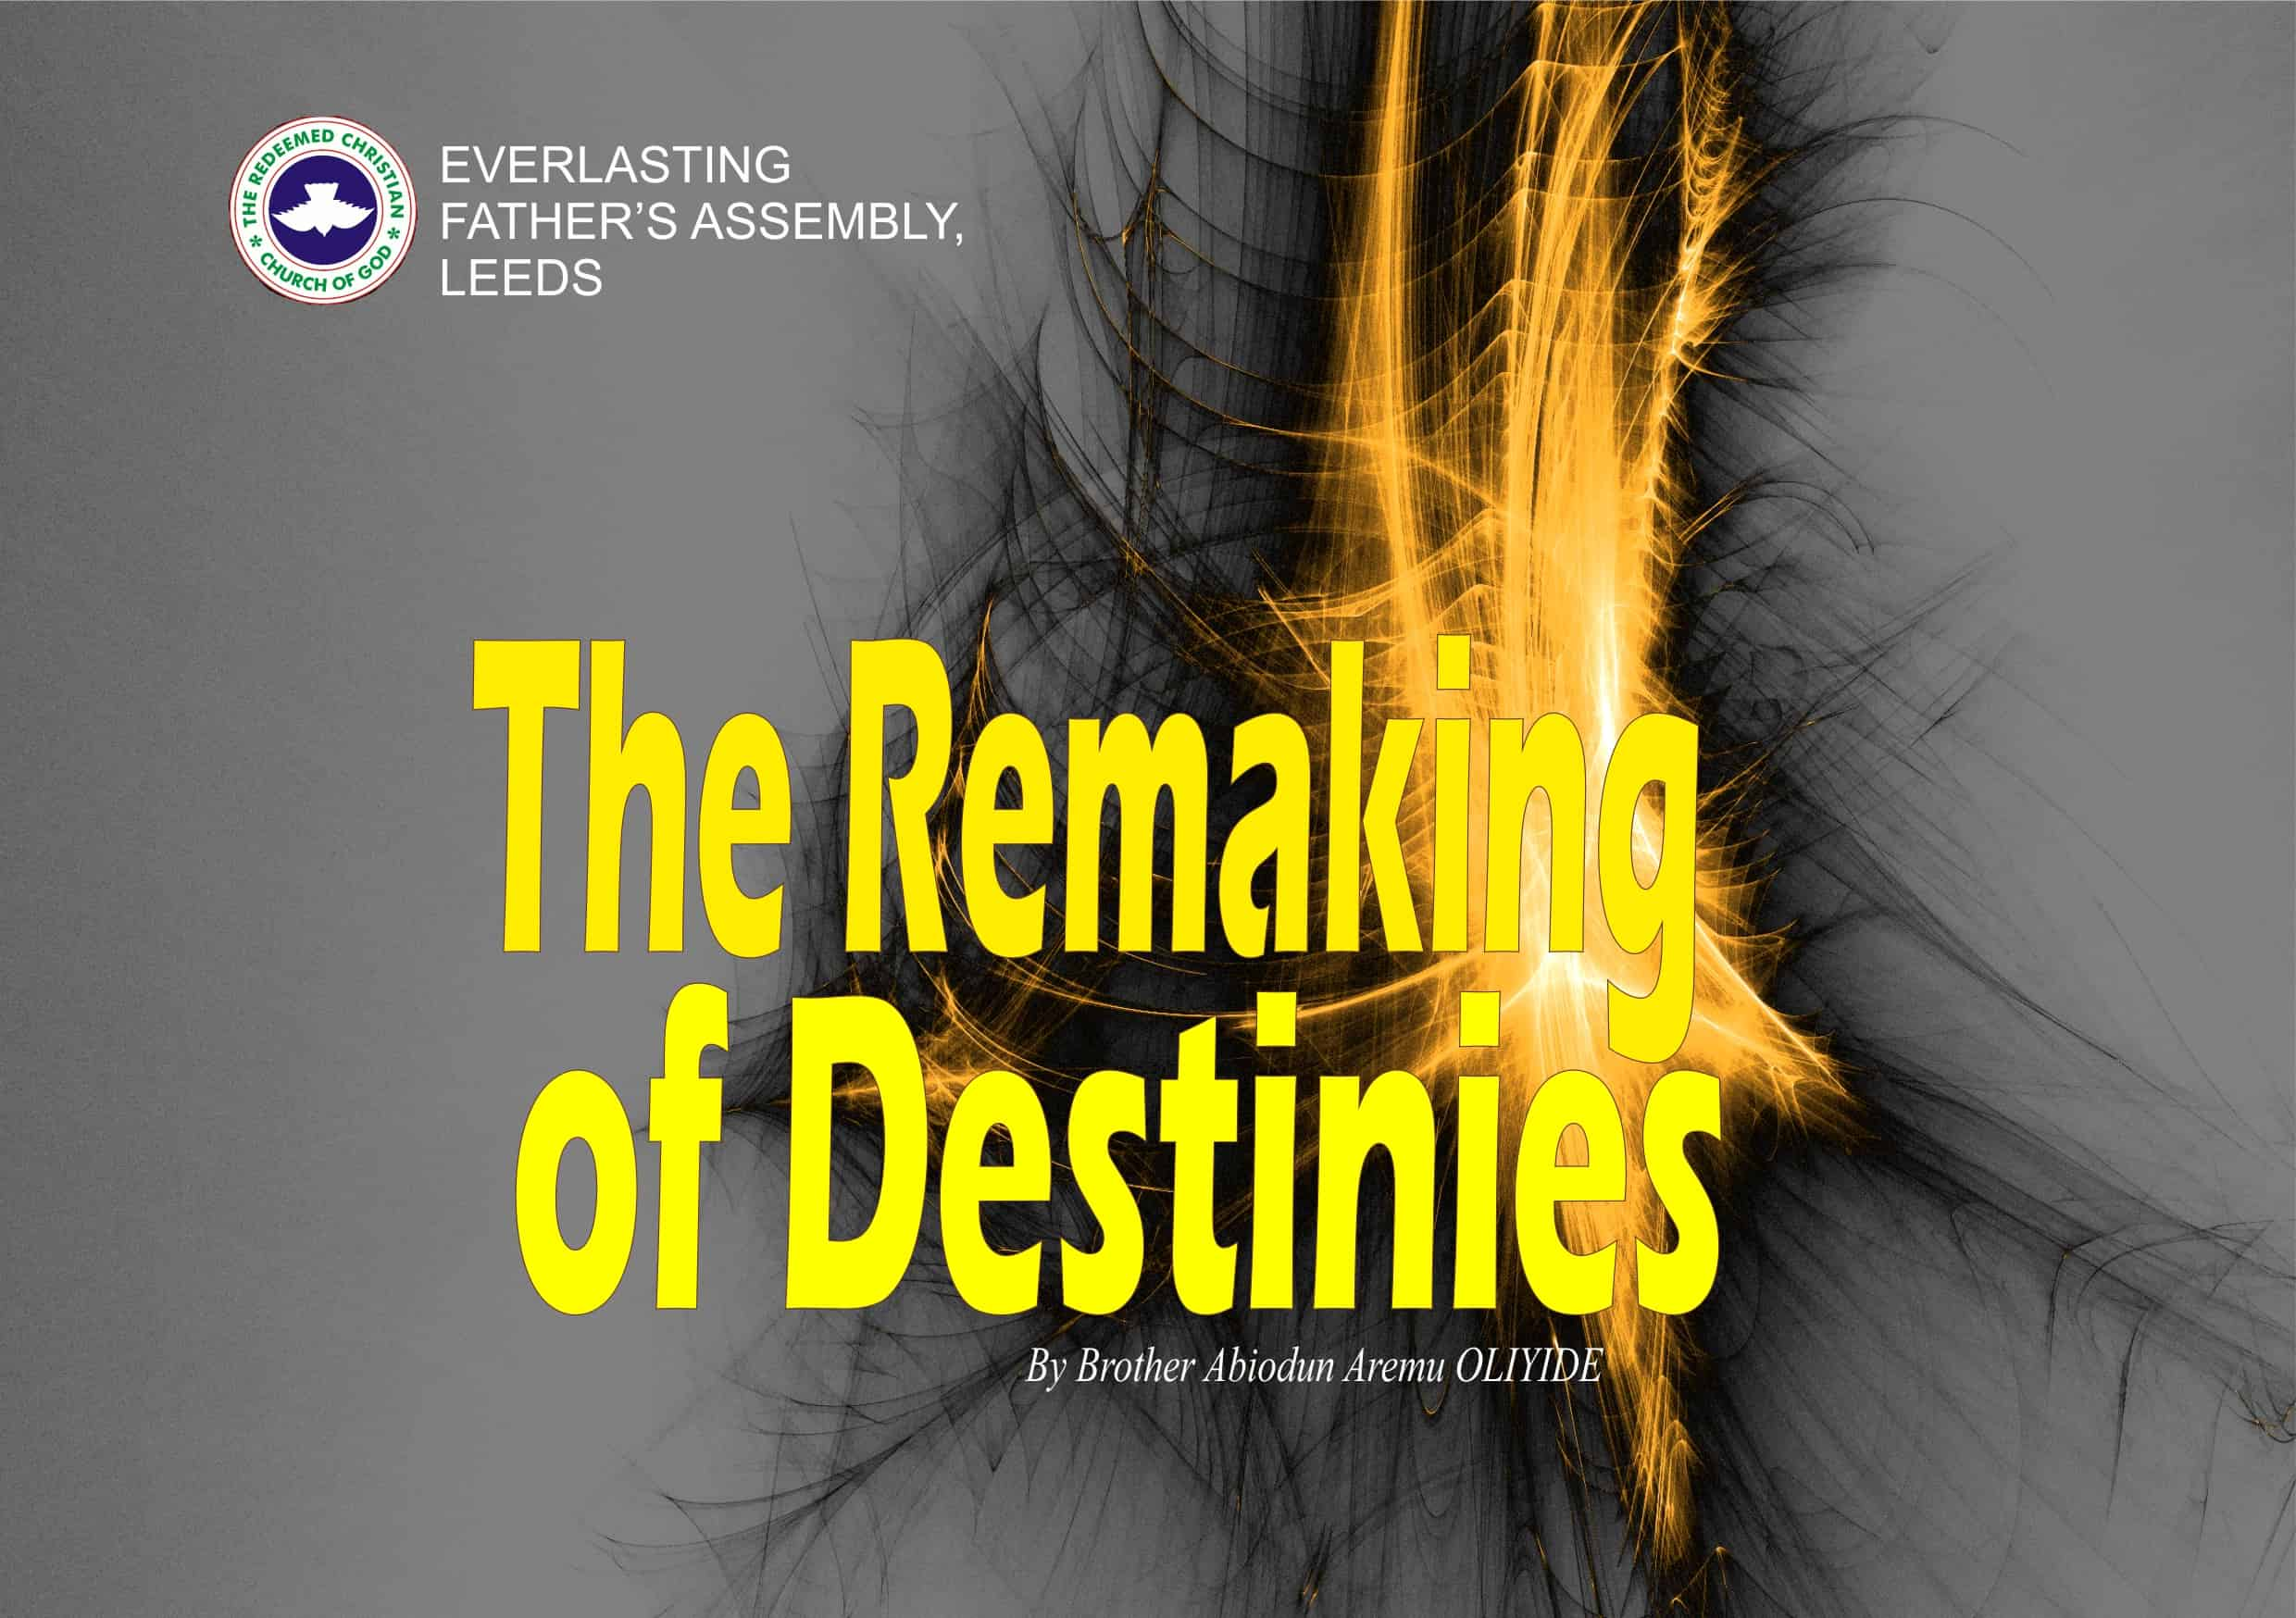 The Remaking of Destinies, by Brother Abiodun Aremu Oliyide